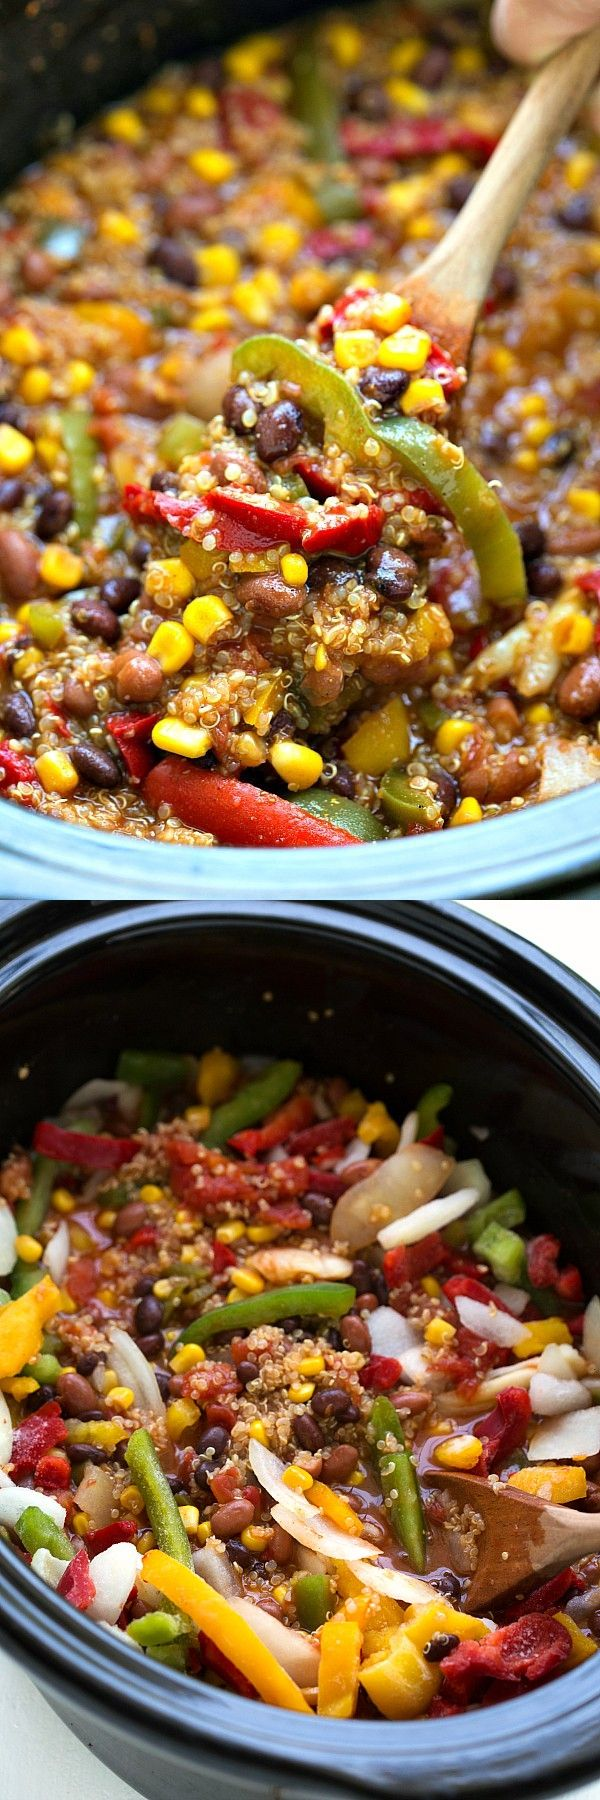 1 can Black beans. 1 can Chili beans. 1 can Corn. 1 tsp Garlic. 1/4 cup Jalapenos. 1 can Tomatoes. 1 package Tri-color pepper and onion blend, frozen. 2 1/4 cups Vegetable or chicken broth. 1 cup Quinoa. 1 package Fajita seasoning. 1 tsp Cumin. 1 cup Mexican blend or fiesta blend shredded cheese.